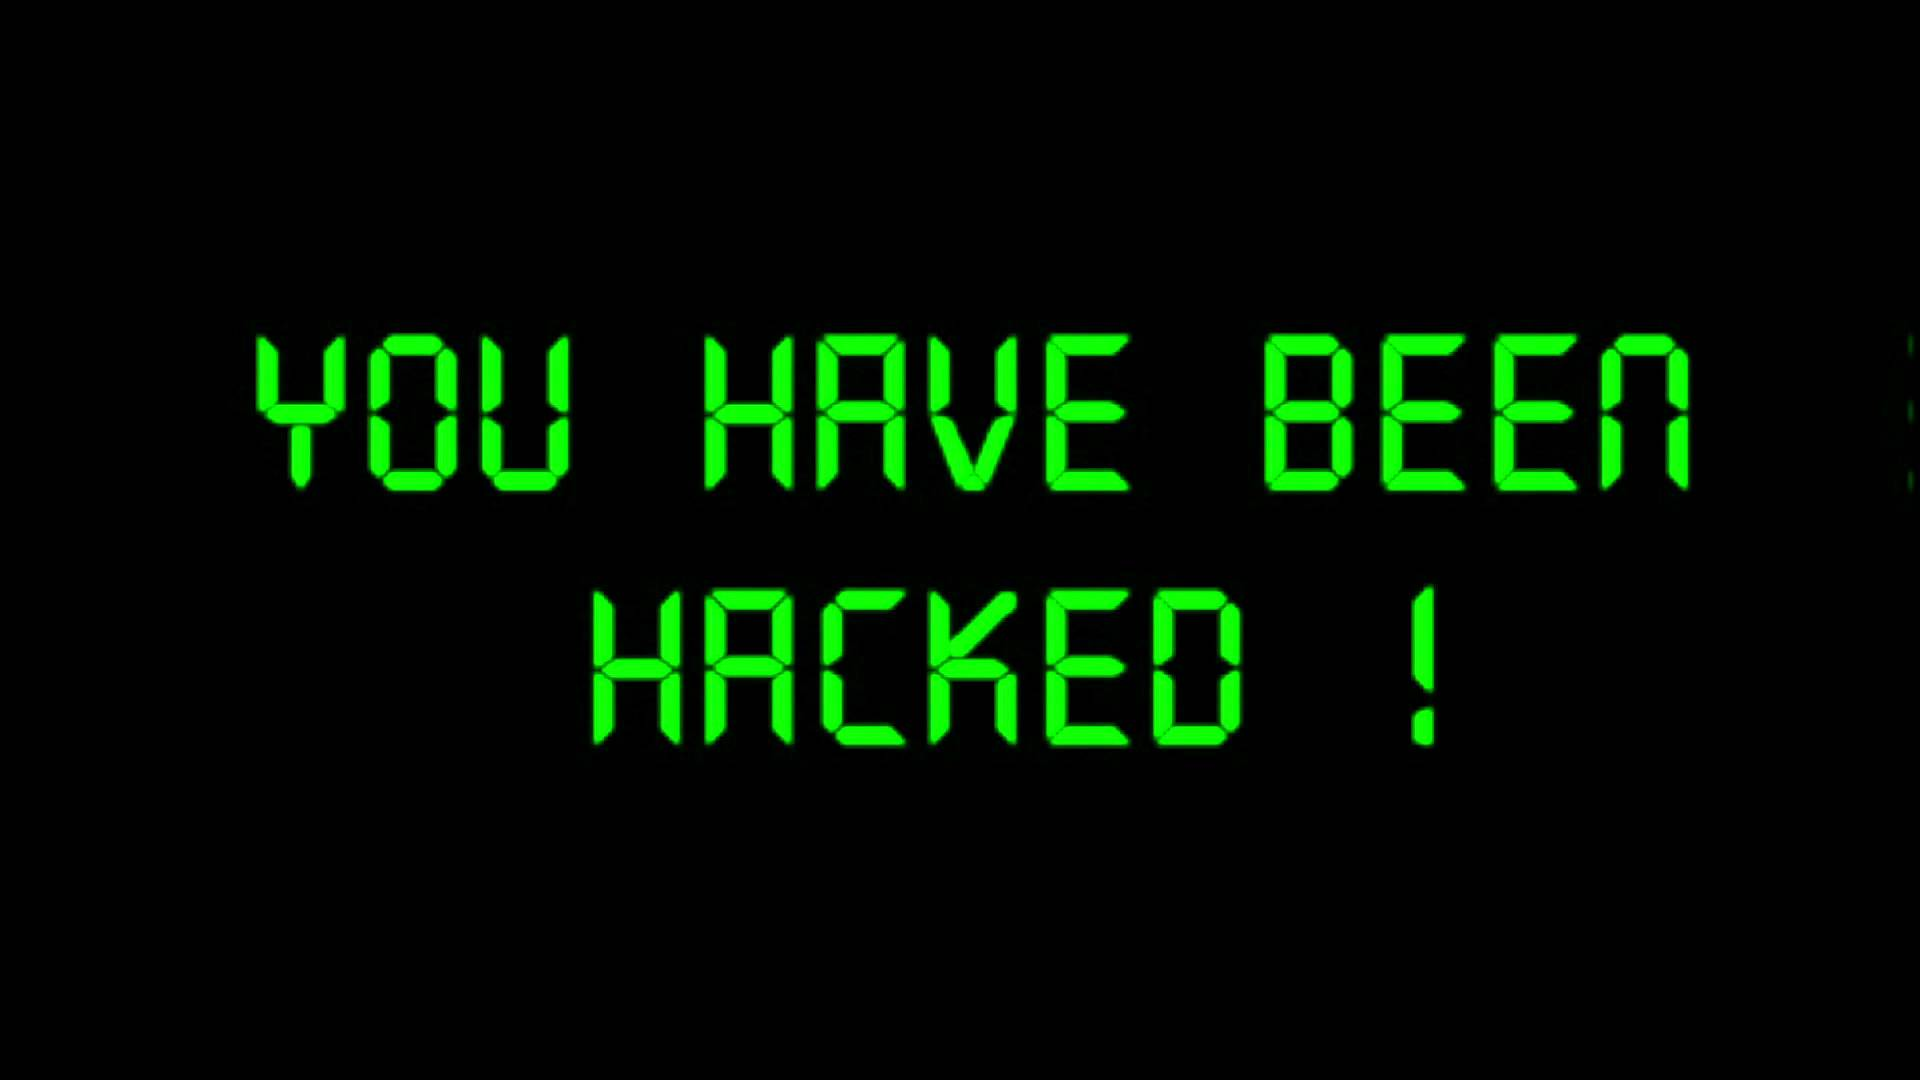 DON'T GET HACKED - Protect Your Sales